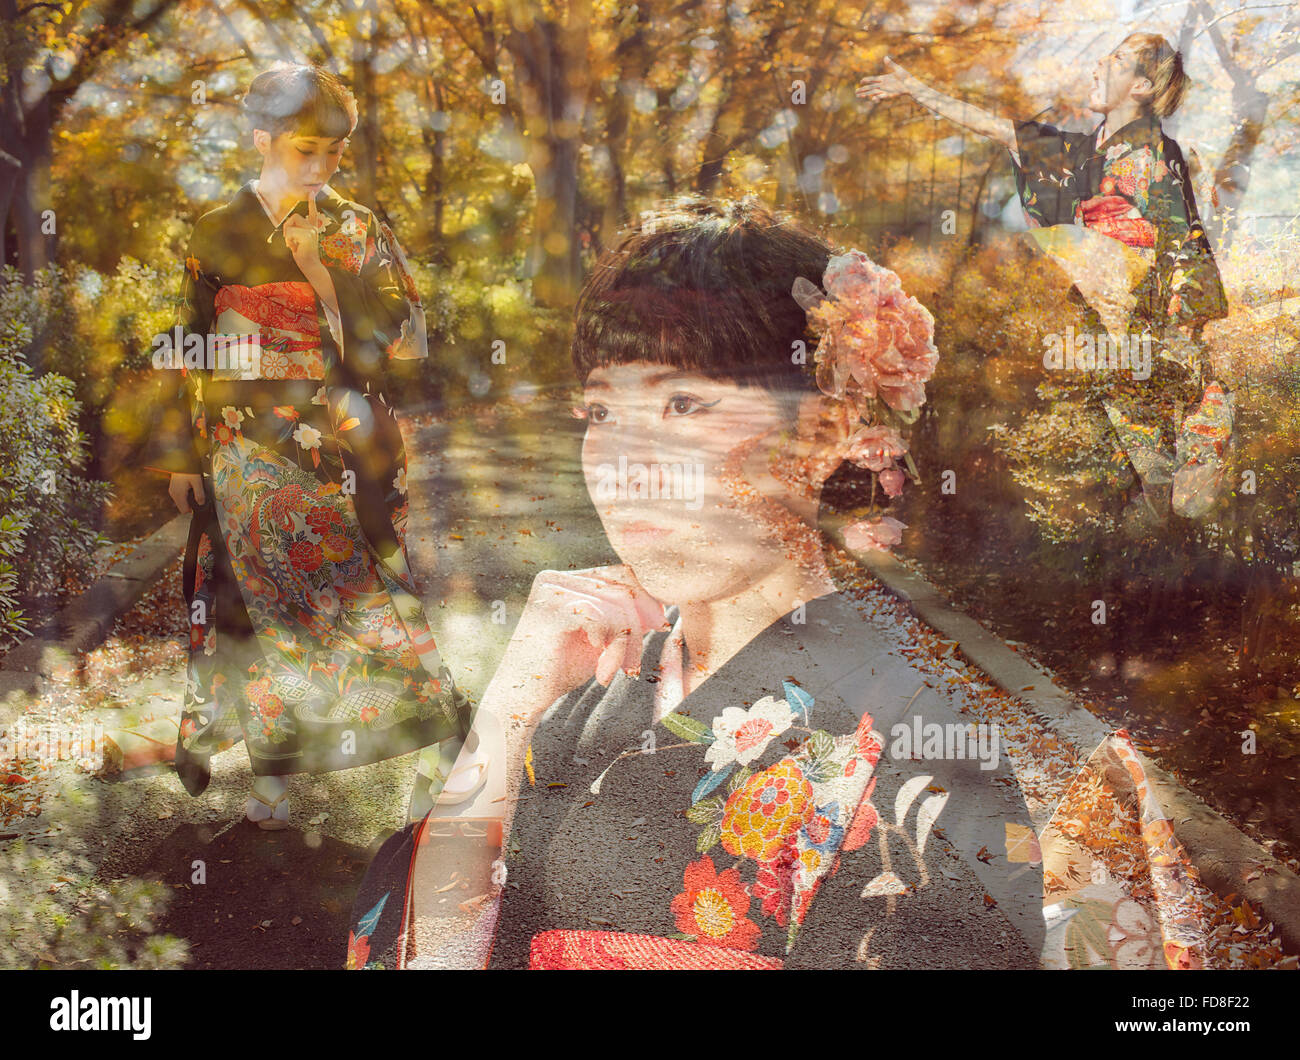 Multiple Exposure Of Woman And Autumn Trees - Stock Image